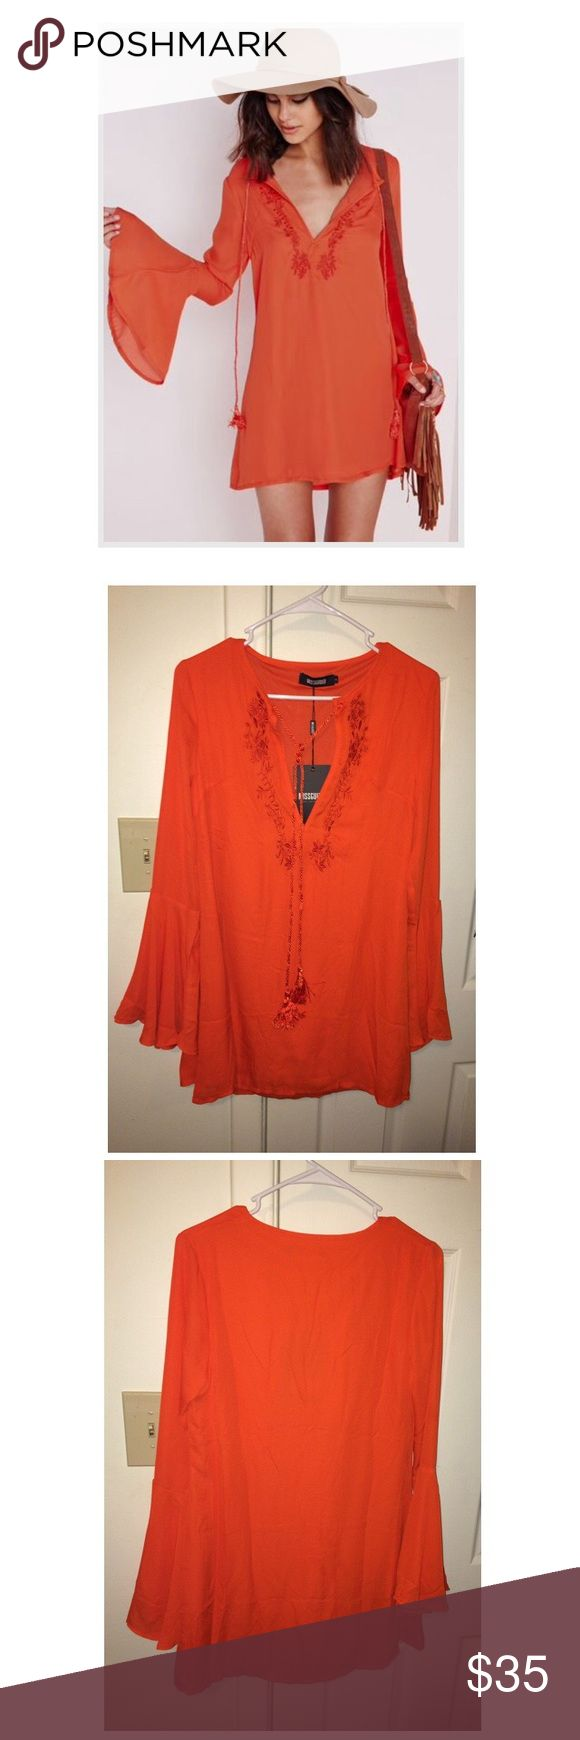 Missguided Bell Sleeve Dress New with tags!! Orange bell sleeve Missguided dress. Never been worn! I love this dress but it is too small on me Missguided Dresses Mini